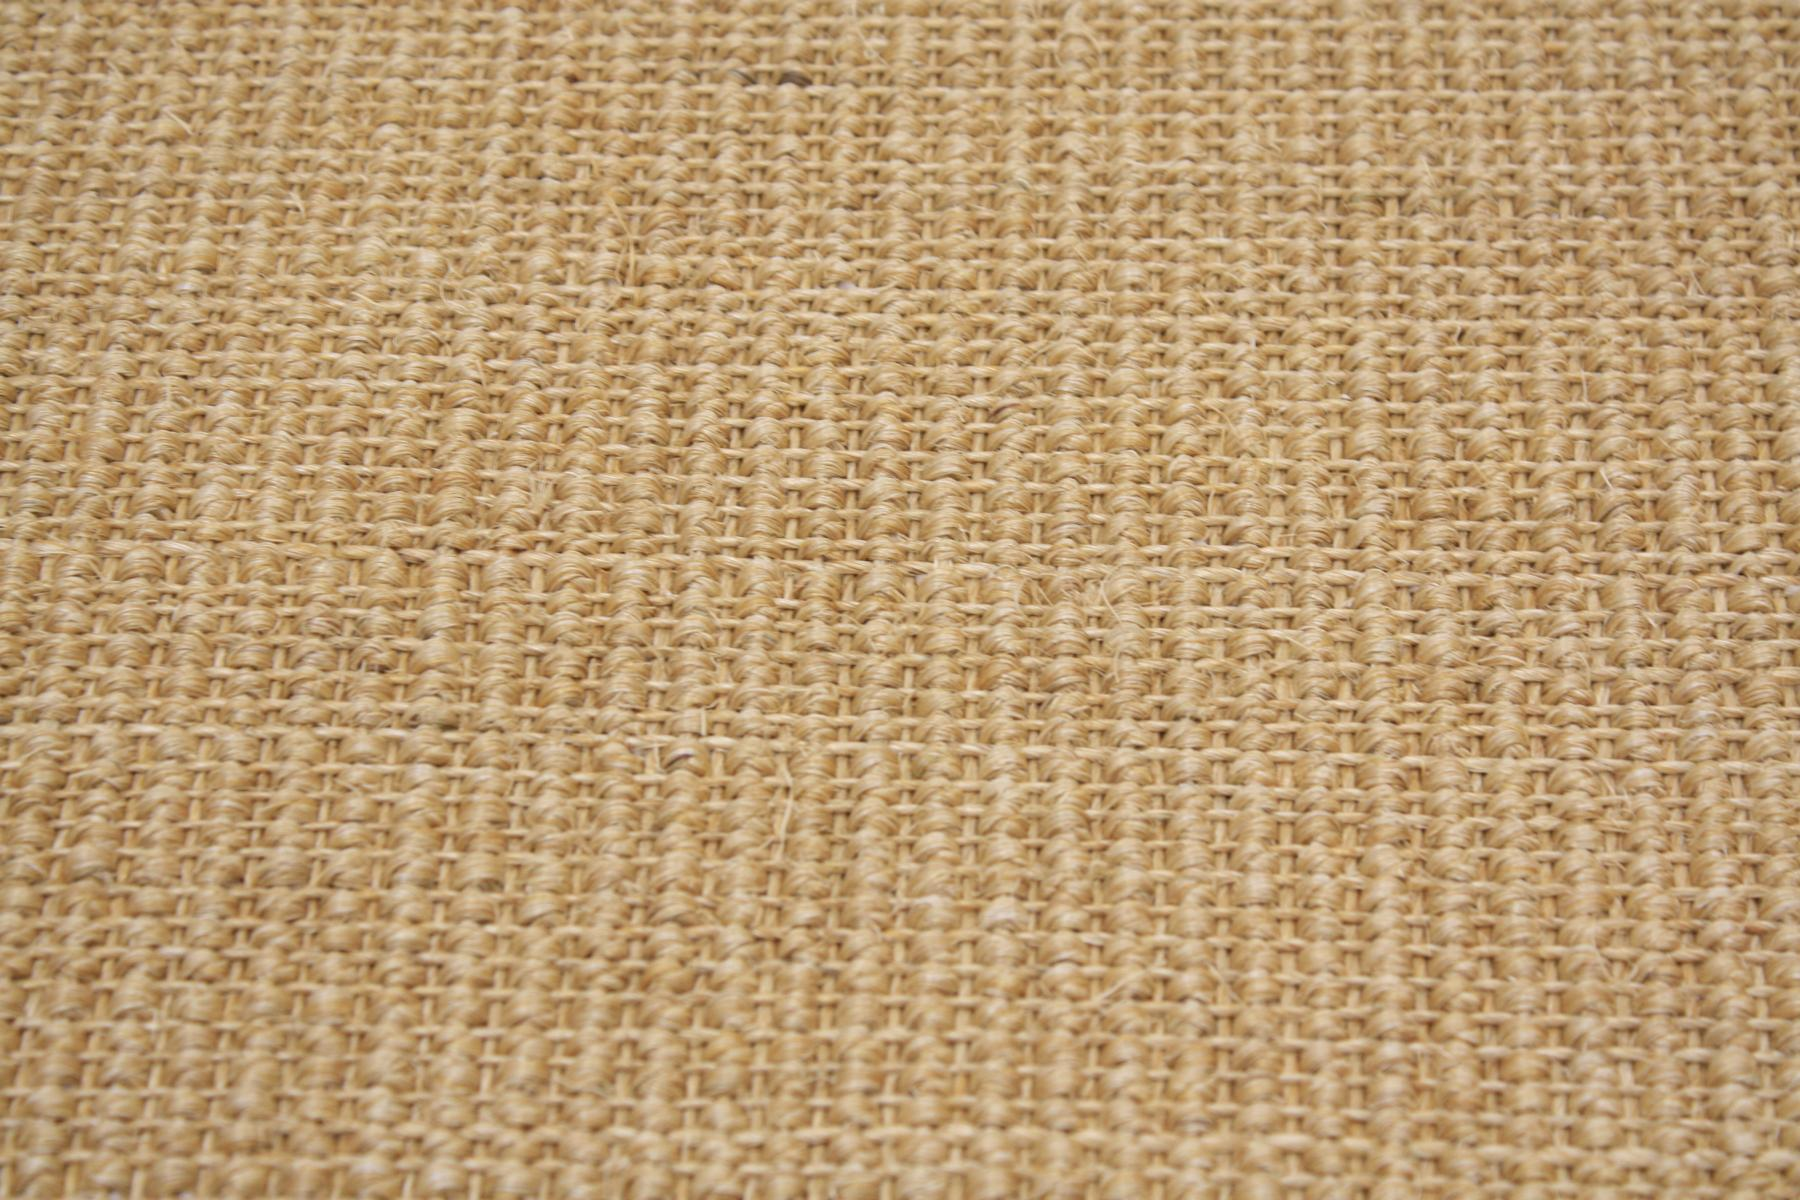 sisal tapis surfil nature 140x200cm 100 sisal boucle ebay. Black Bedroom Furniture Sets. Home Design Ideas